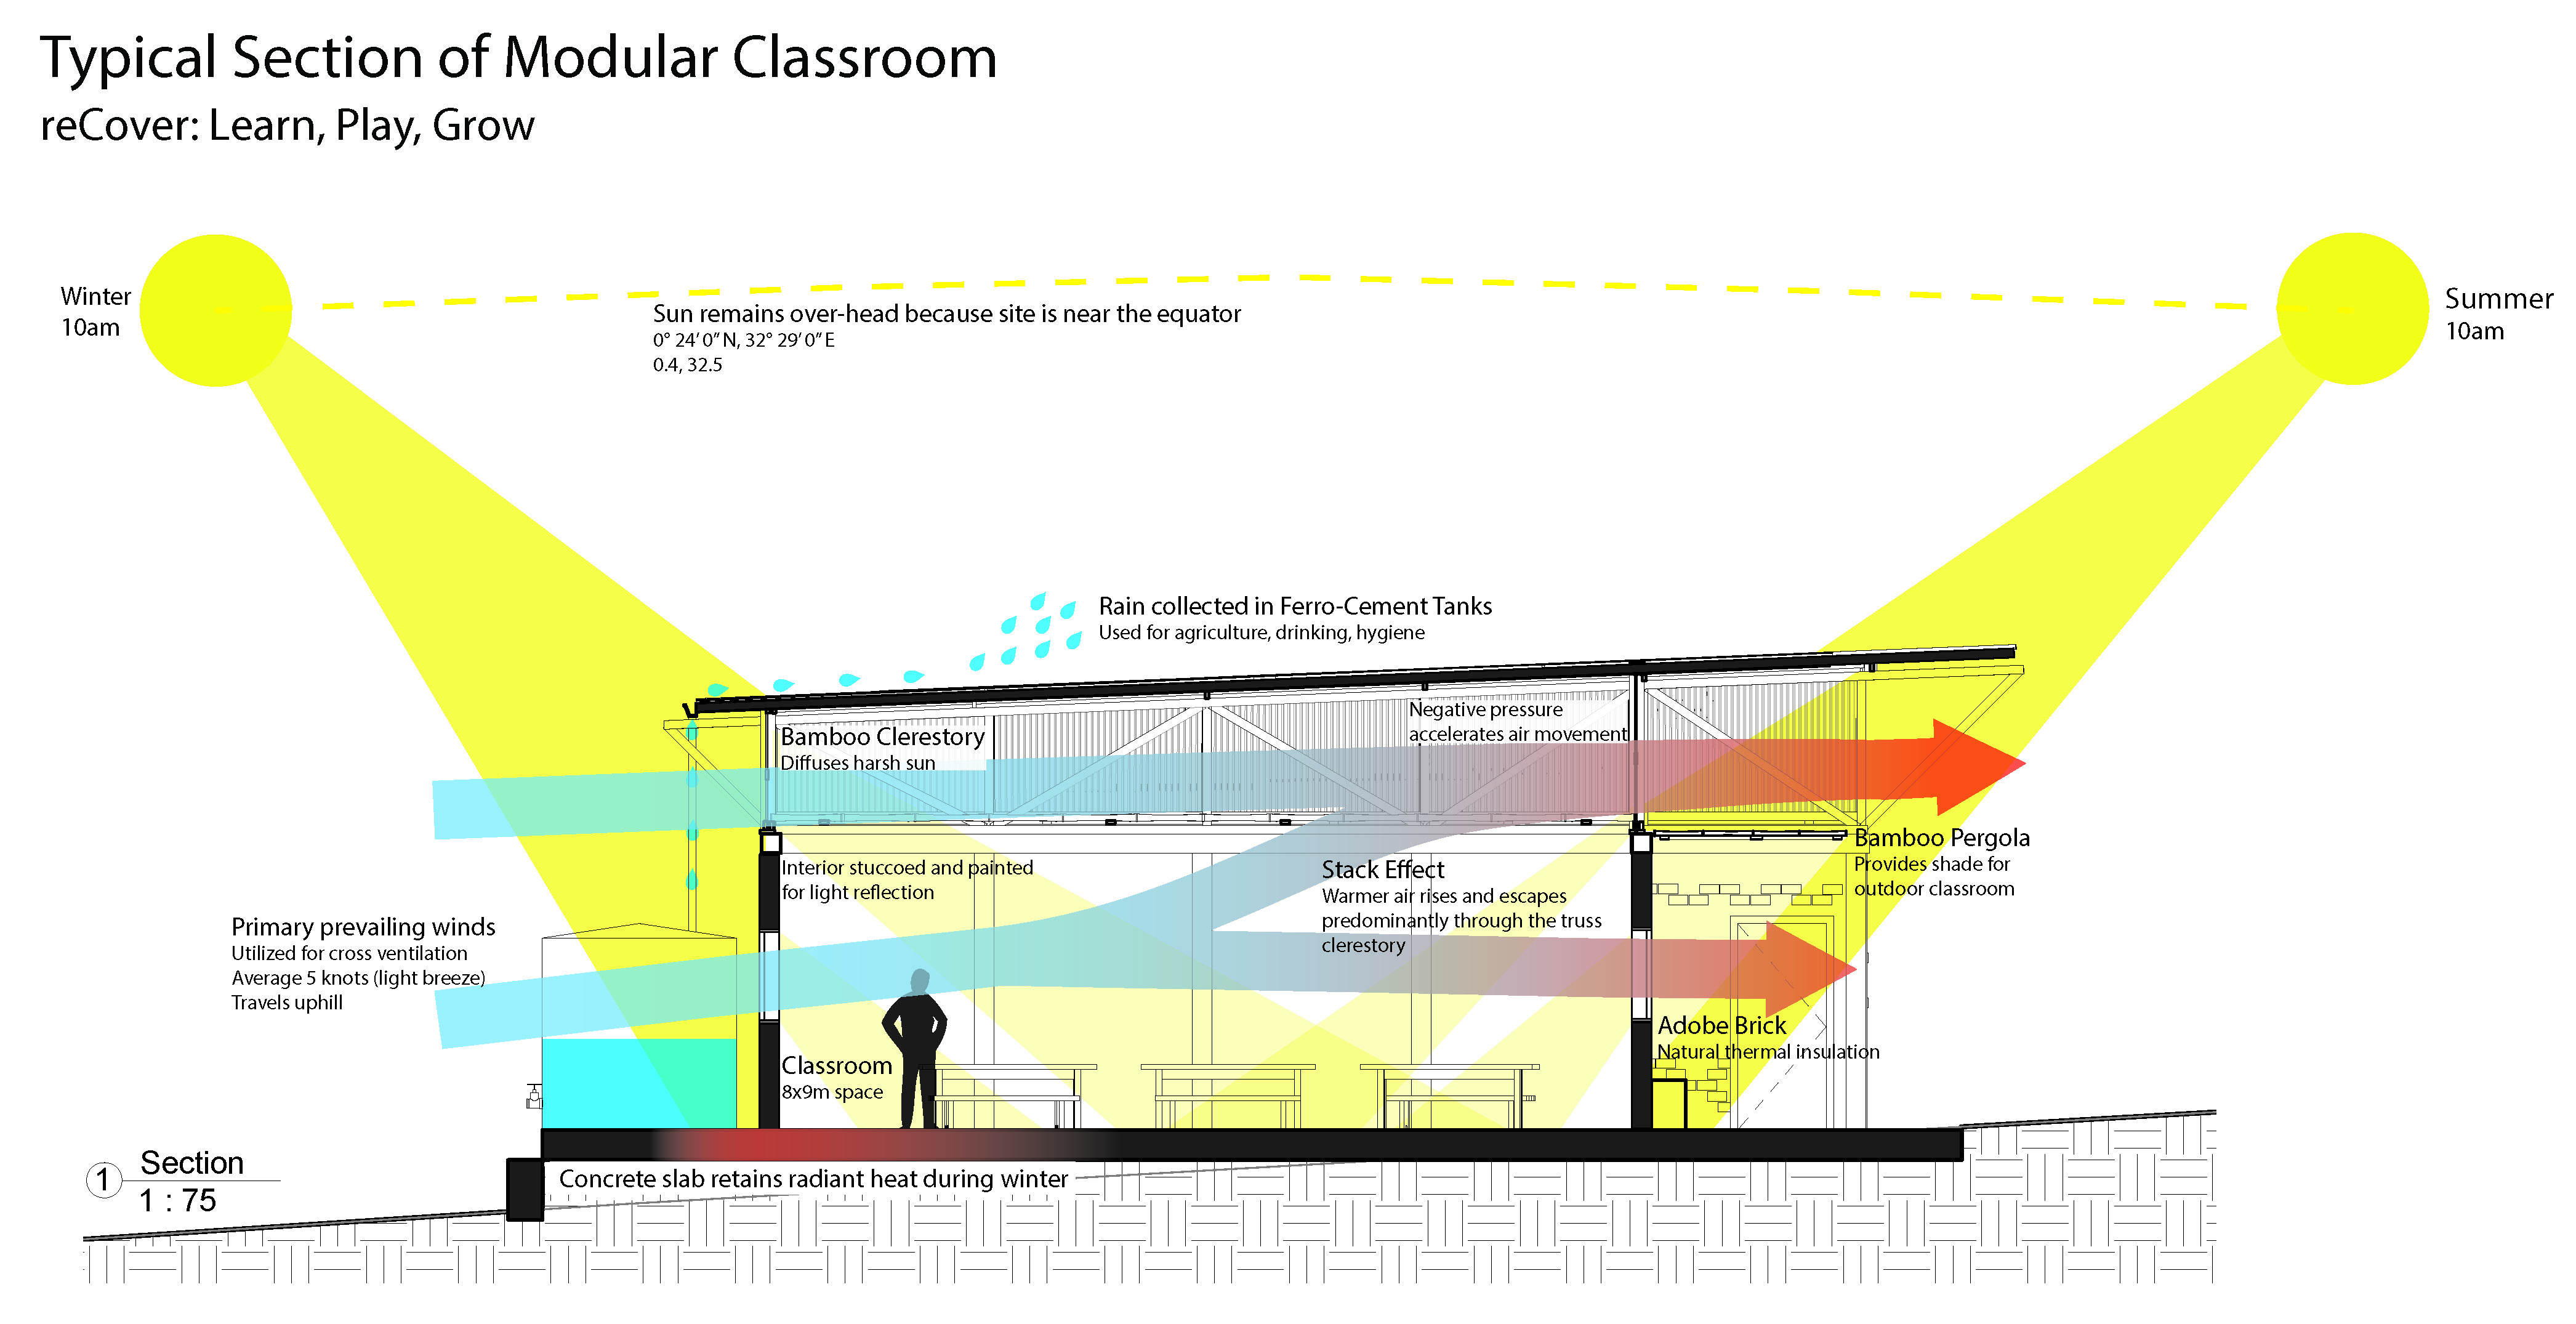 lighting architecture diagram xlr connector balanced uncategorized saman 39s systems sites and building 2012